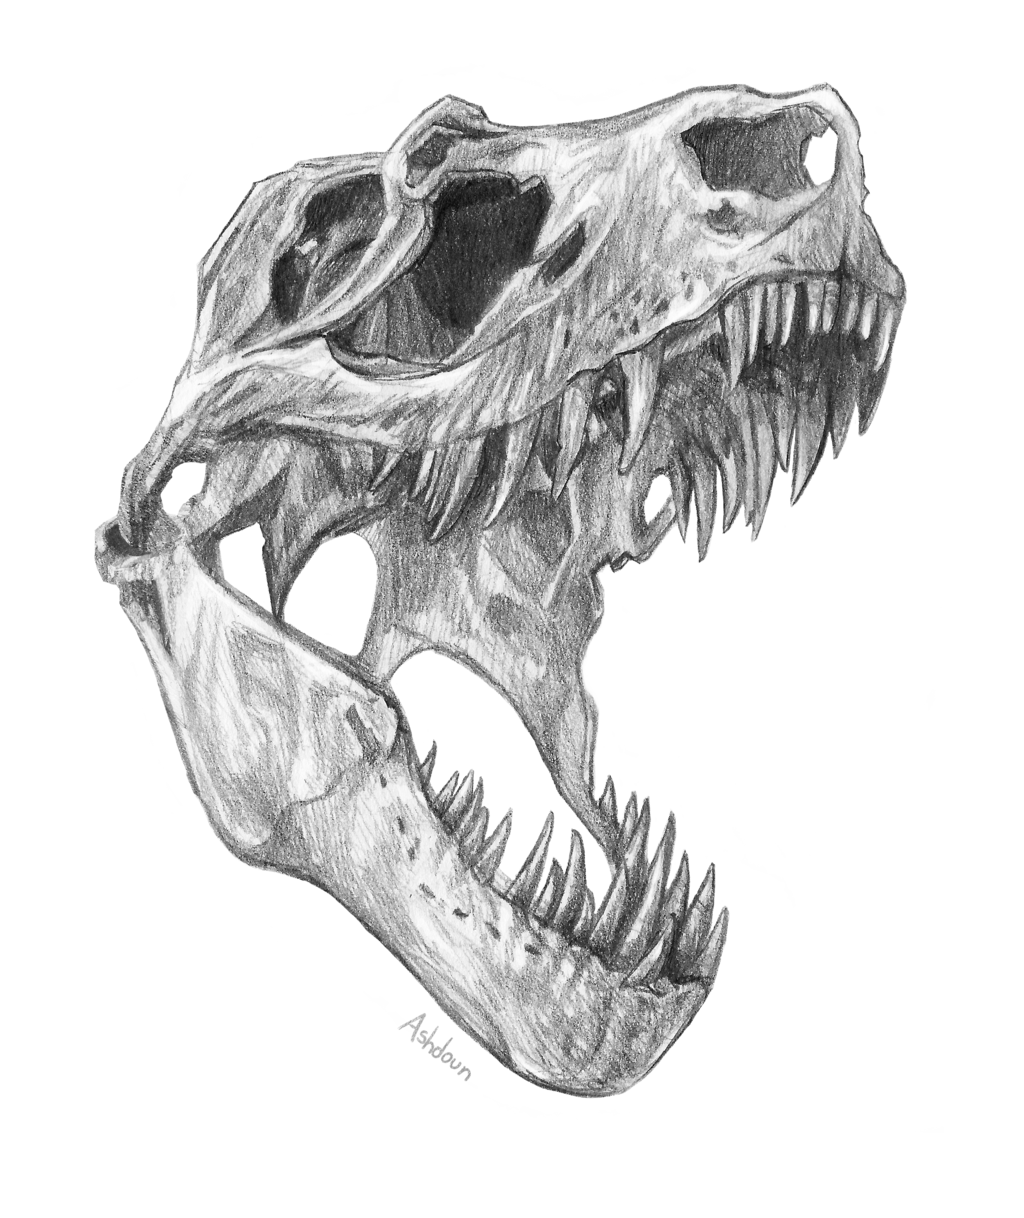 clipart free download t rex pencil drawing